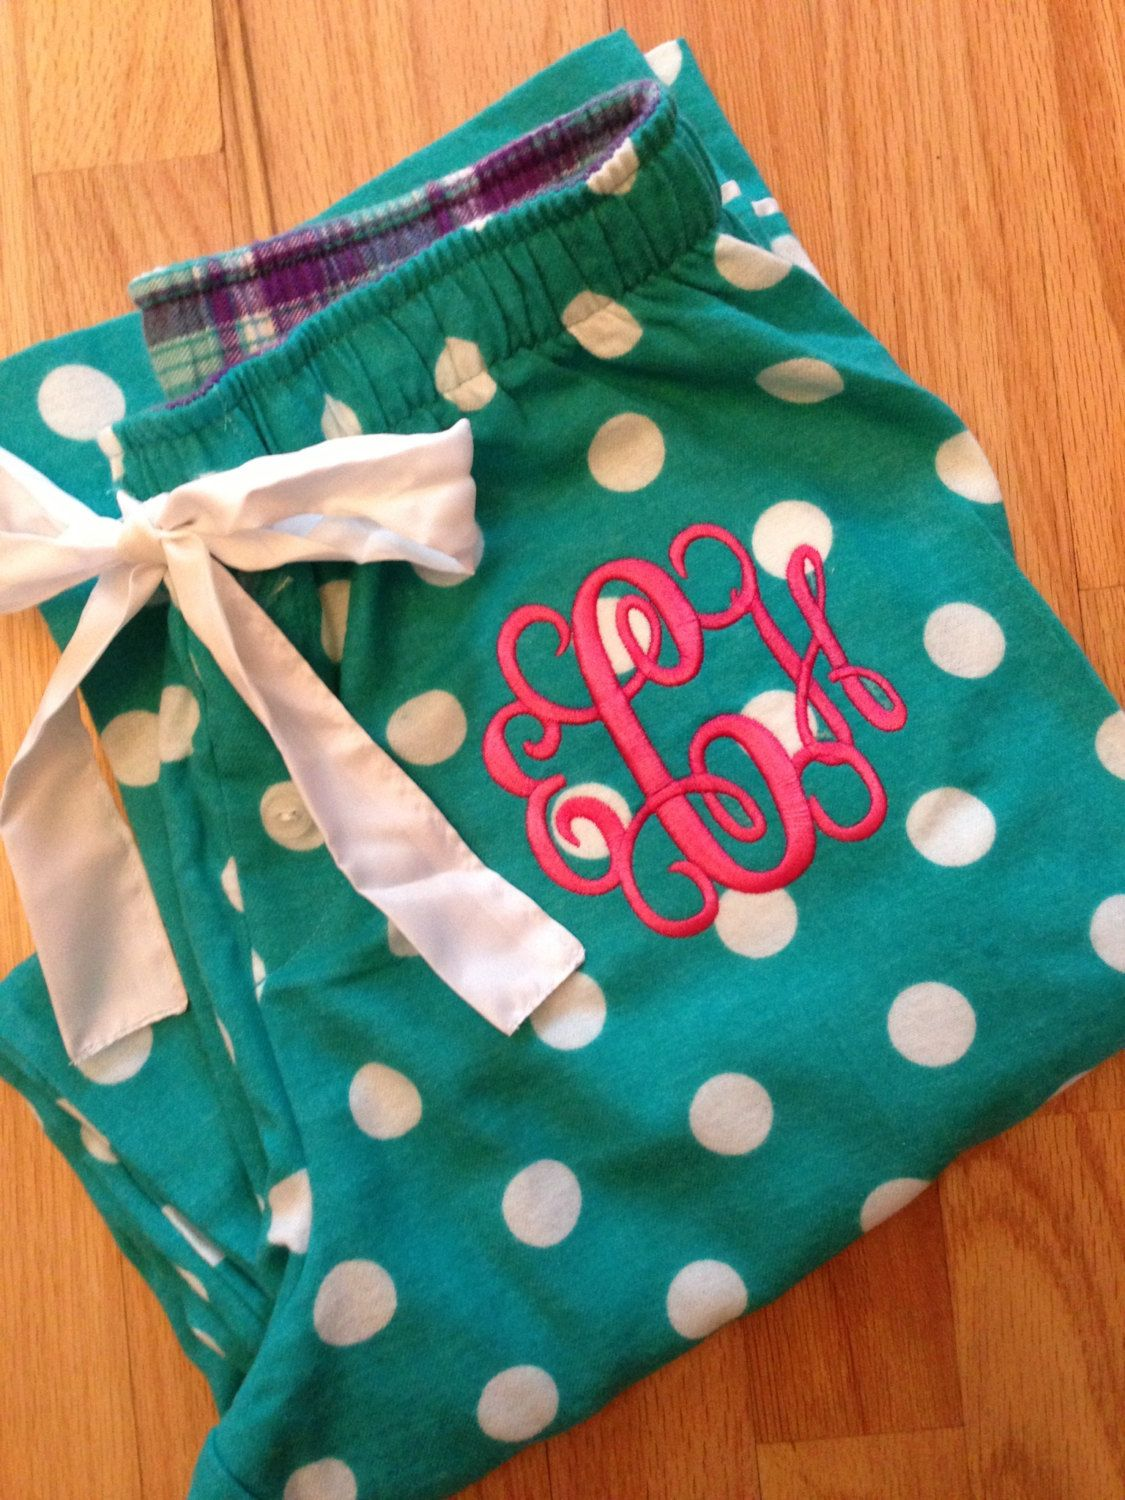 7be93bce Monogrammed Pajama Pants - Teal and white polka dots - Ladies and Junior  Sizes. $23.99, via Etsy.